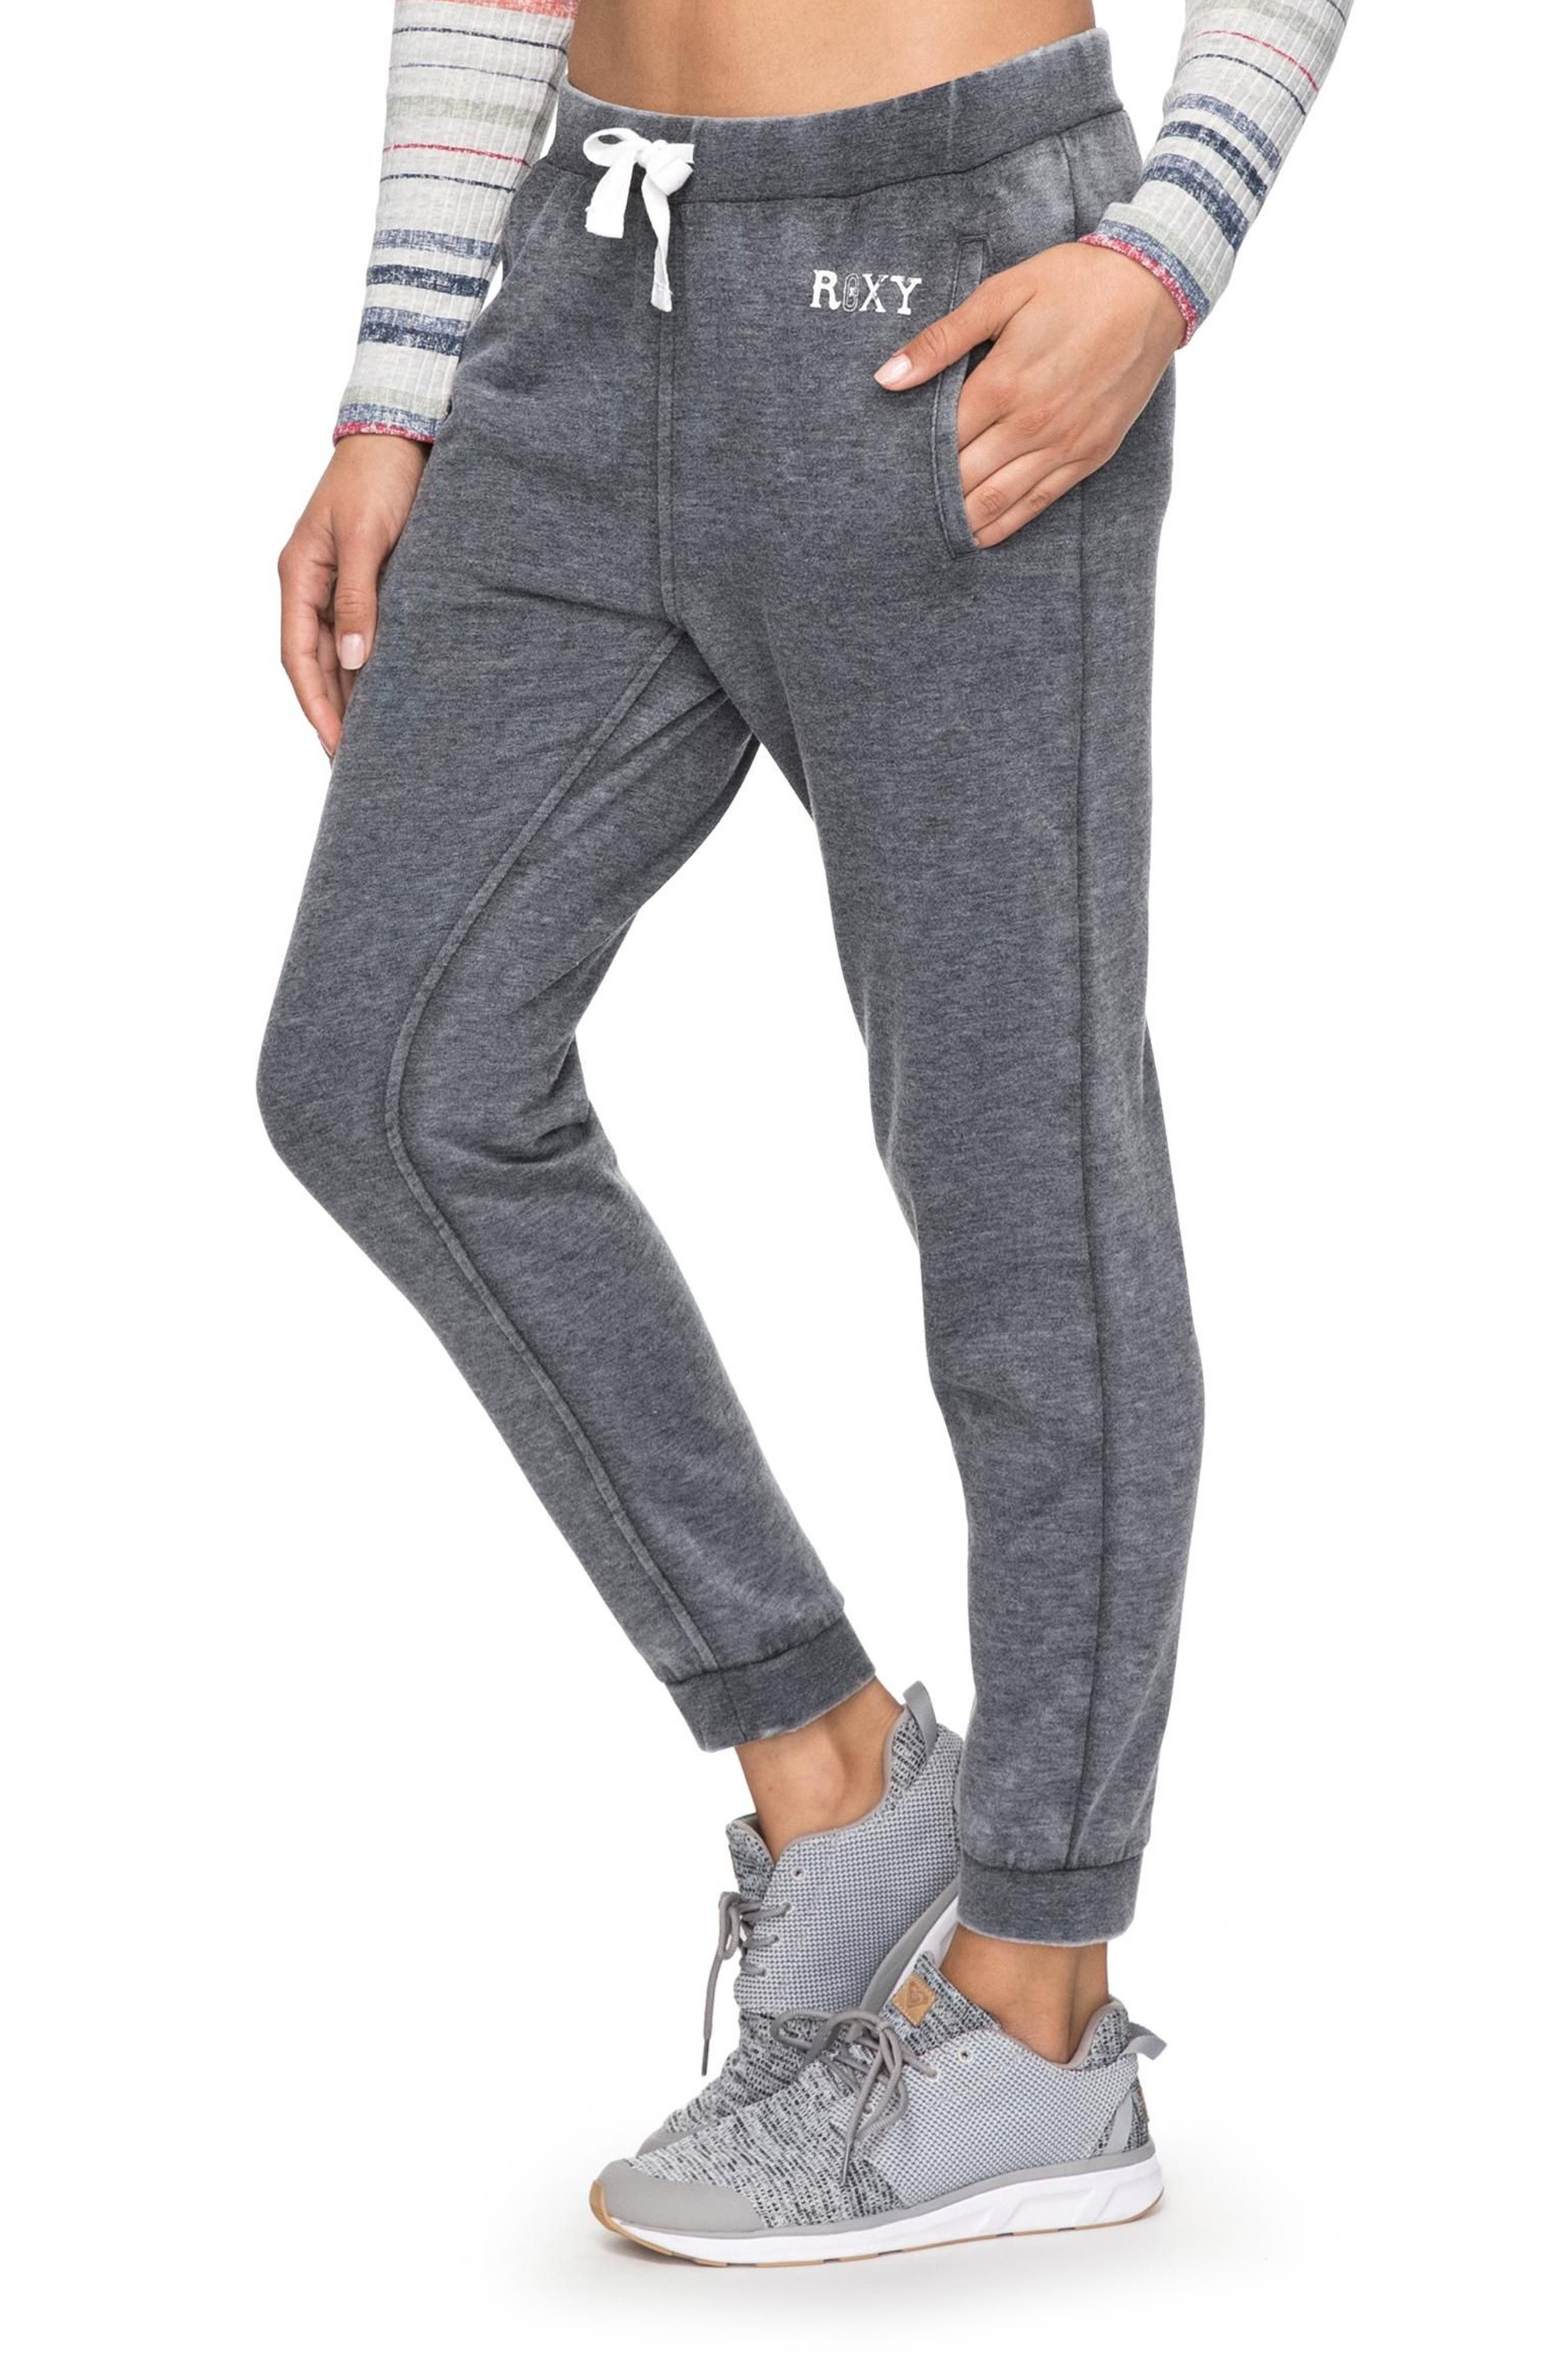 Groovy Song Tidewall Jogger Pants,                             Alternate thumbnail 3, color,                             002